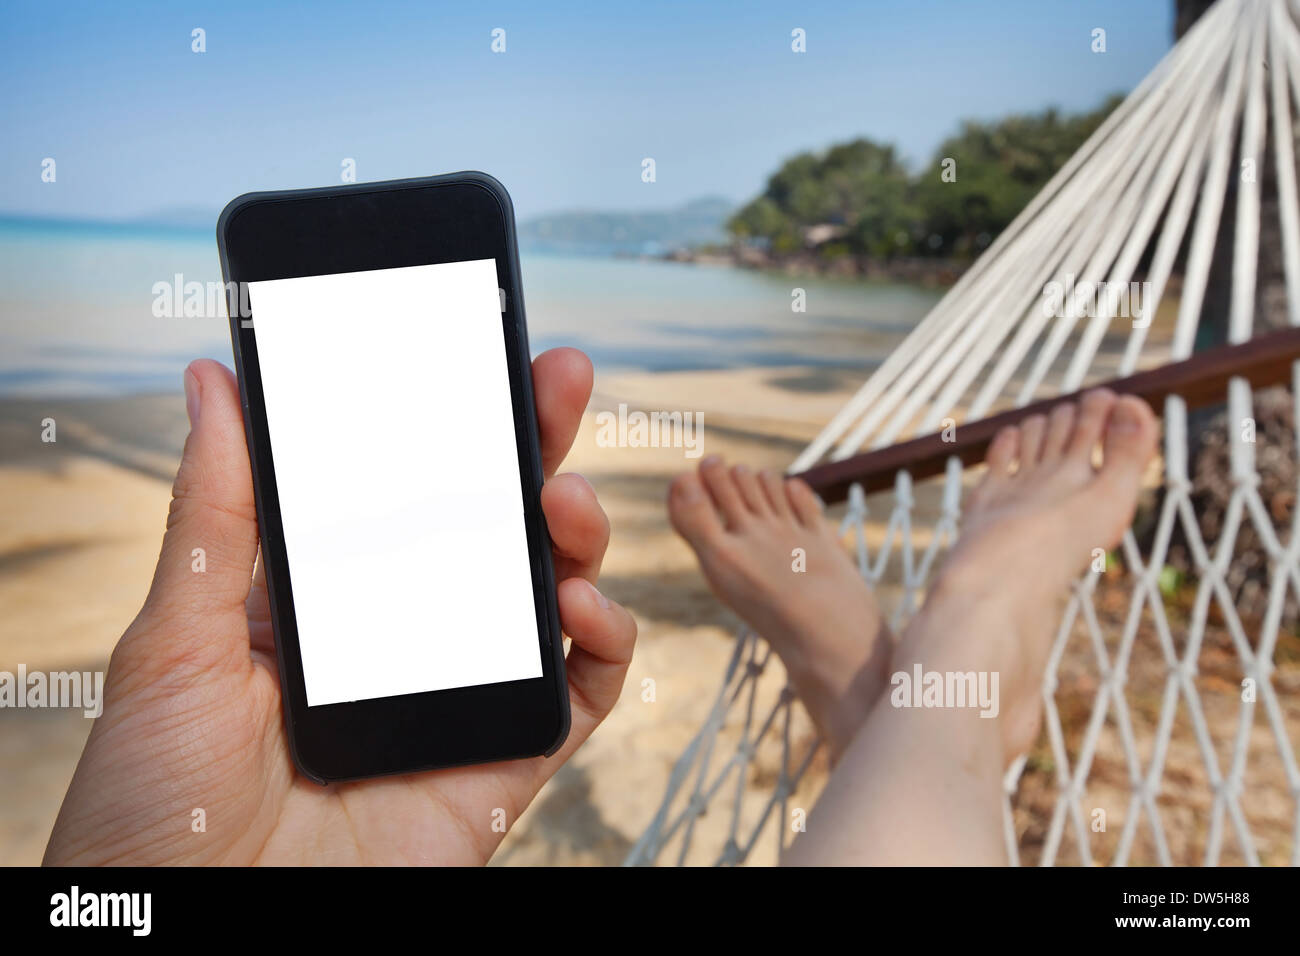 smartphone in the hand in beach hammock - Stock Image